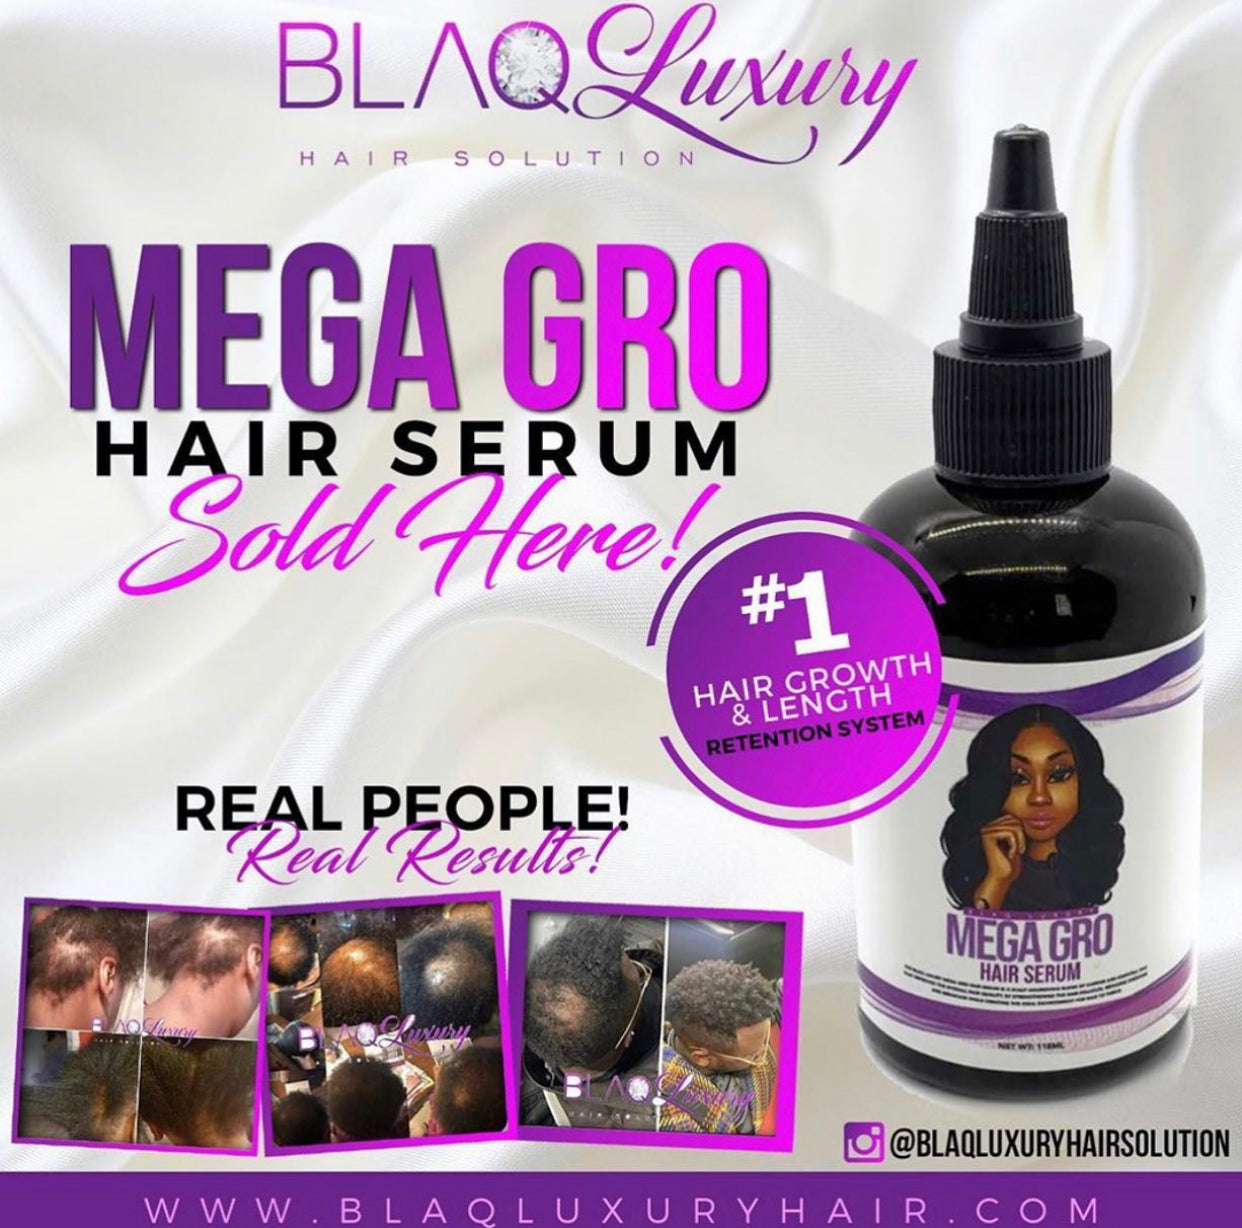 #1 HAIR GROWTH SYSTEM! PEOPLE ARE SEEING RESULTS IN AS LITTLE AS 7 DAYS!!